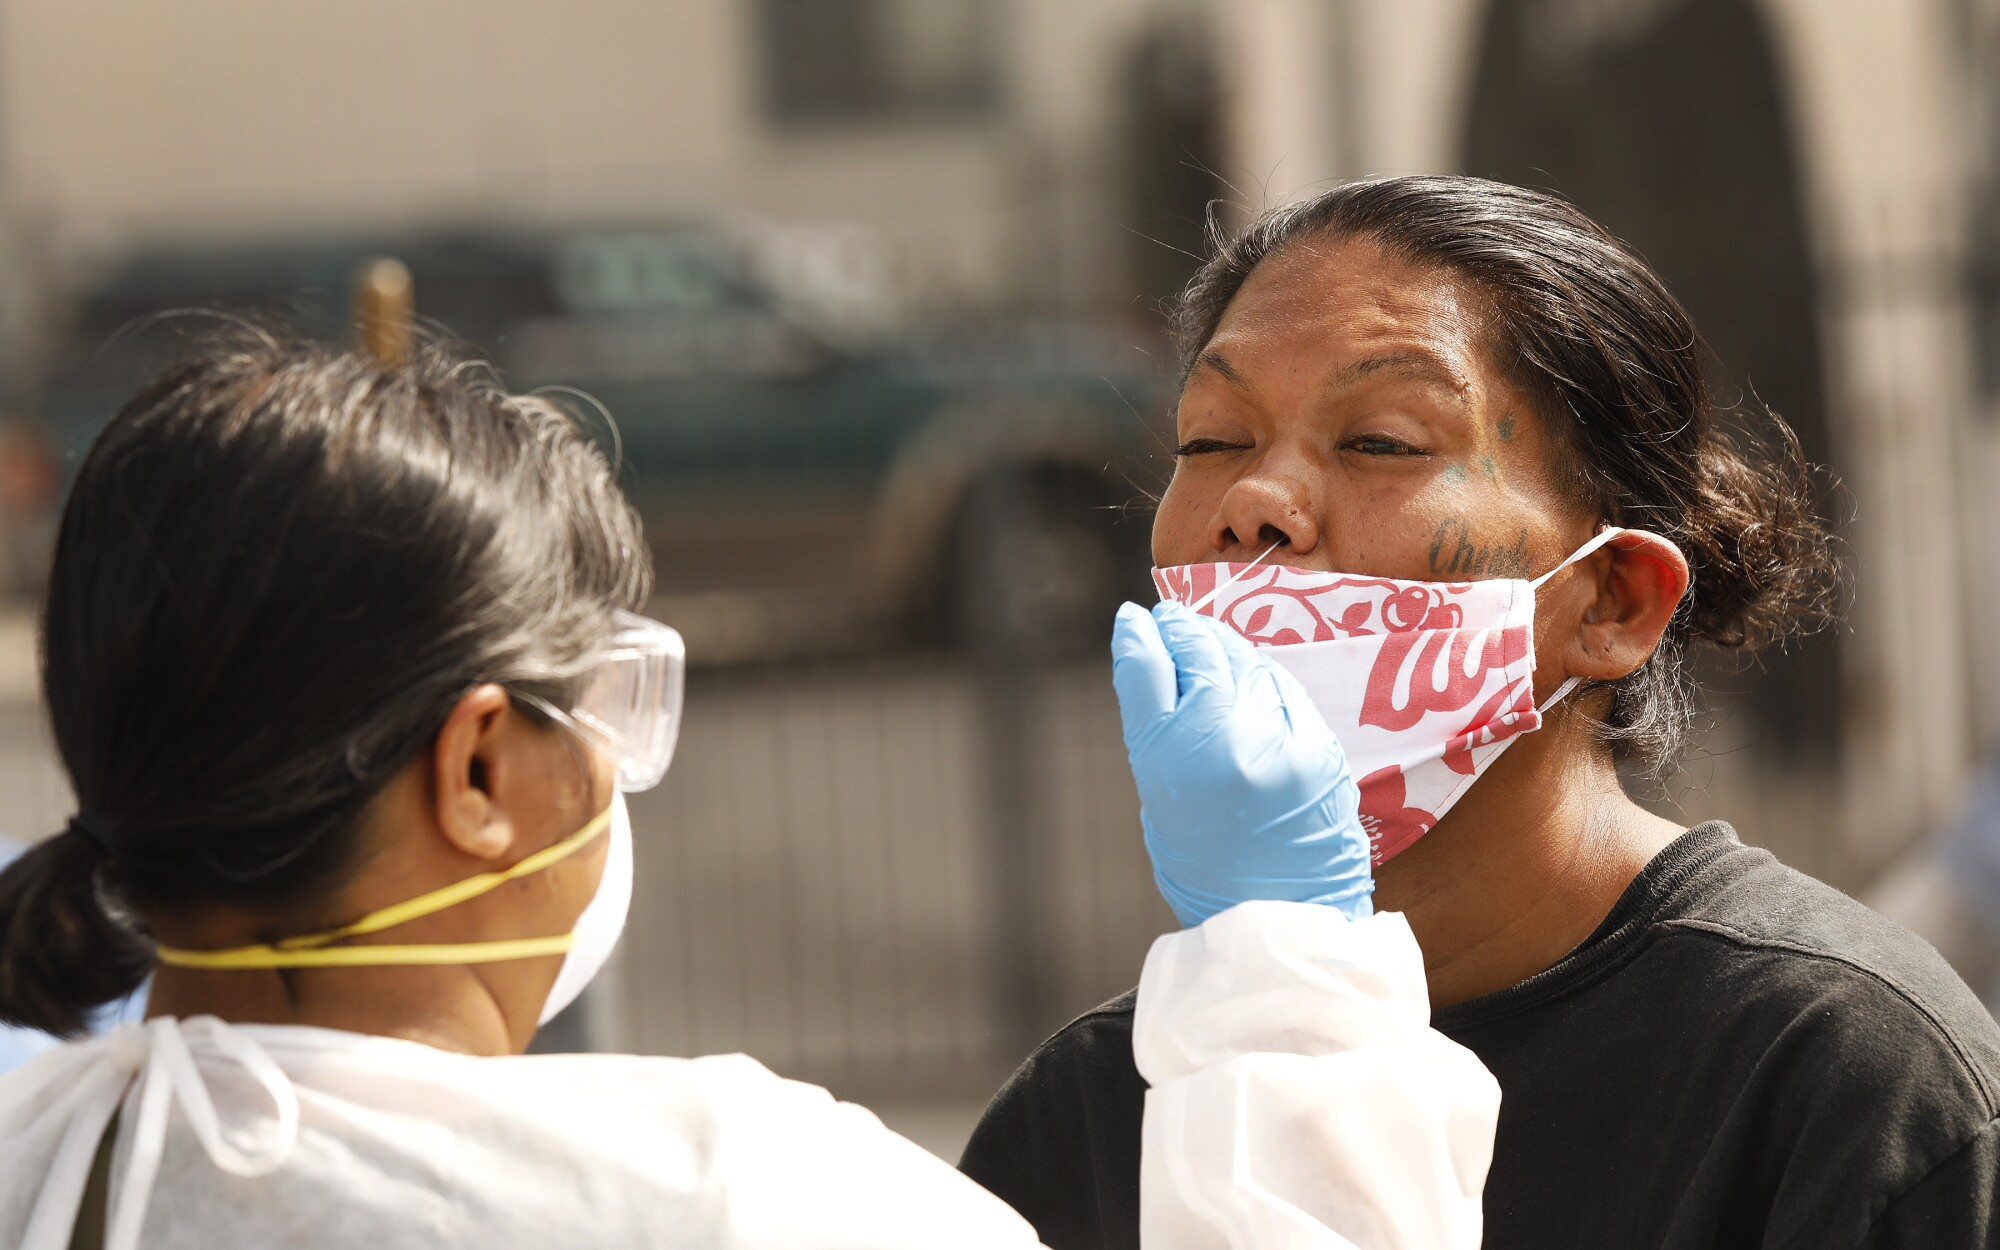 Fatima, who is homeless and living on skid row in downtown Los Angeles, gets tested for the coronavirus